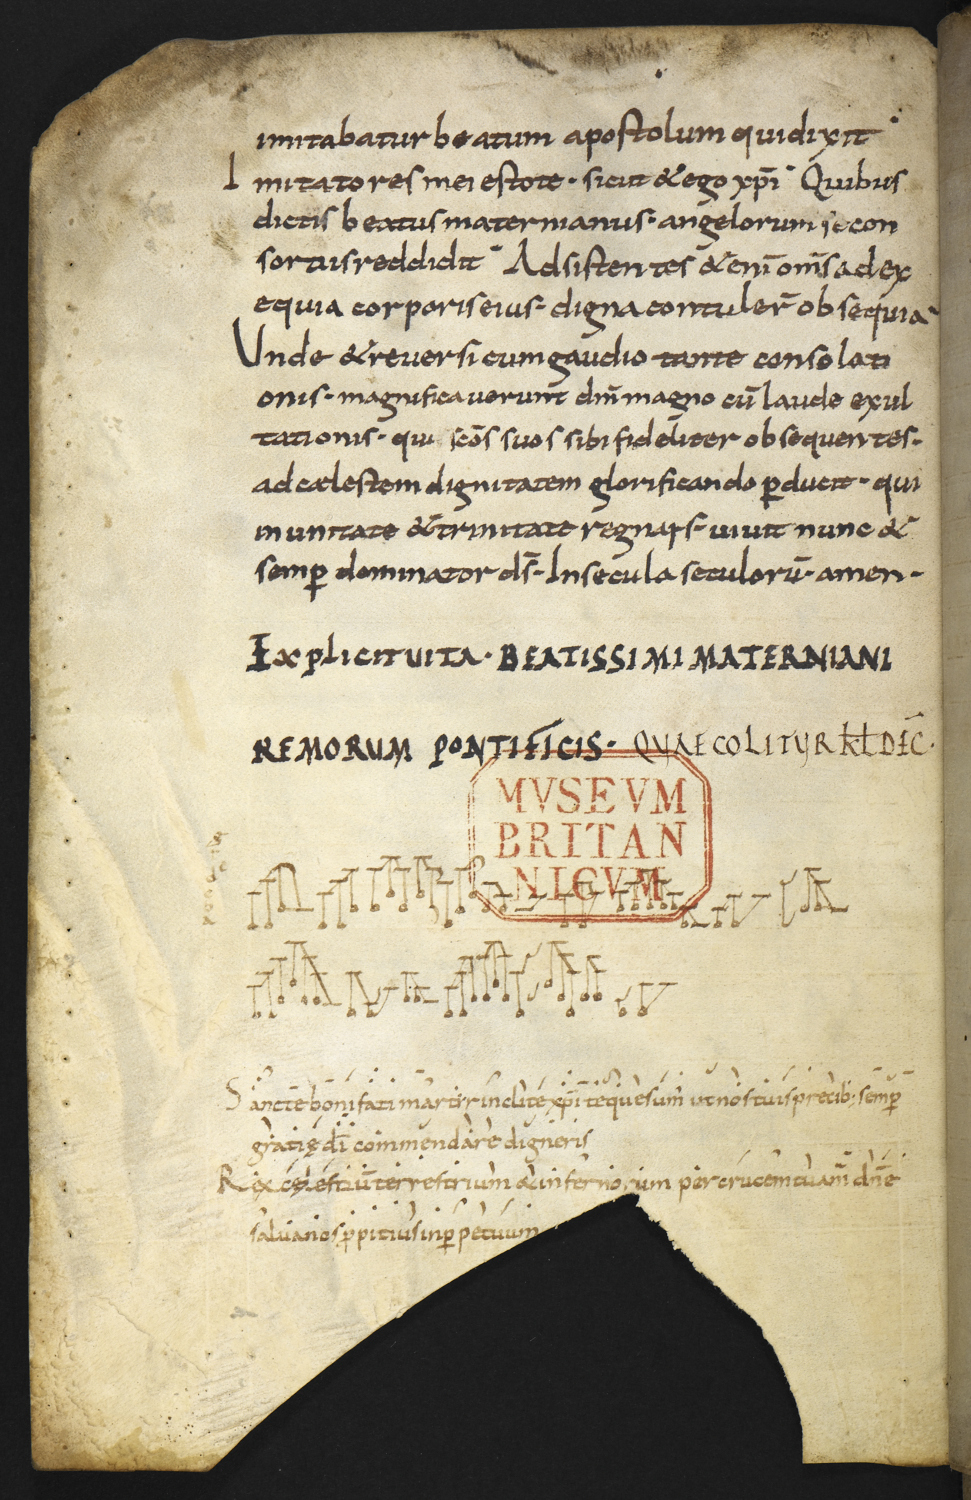 oldst dated manuscript